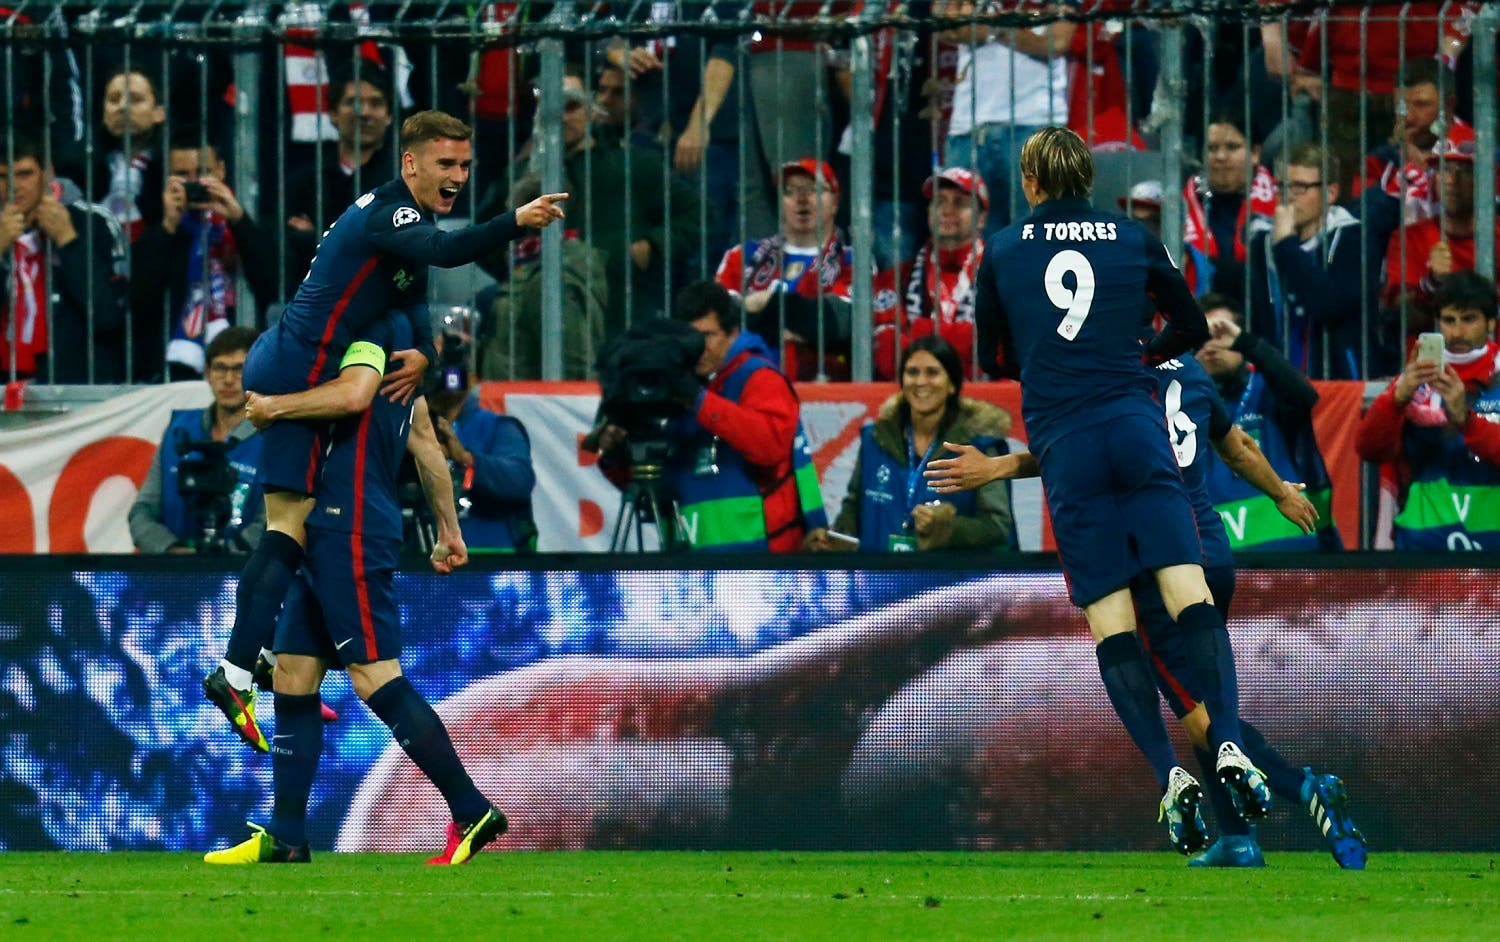 Atletico Madrid's Antoine Griezmann celebrates scoring their first goal. (Reuters)